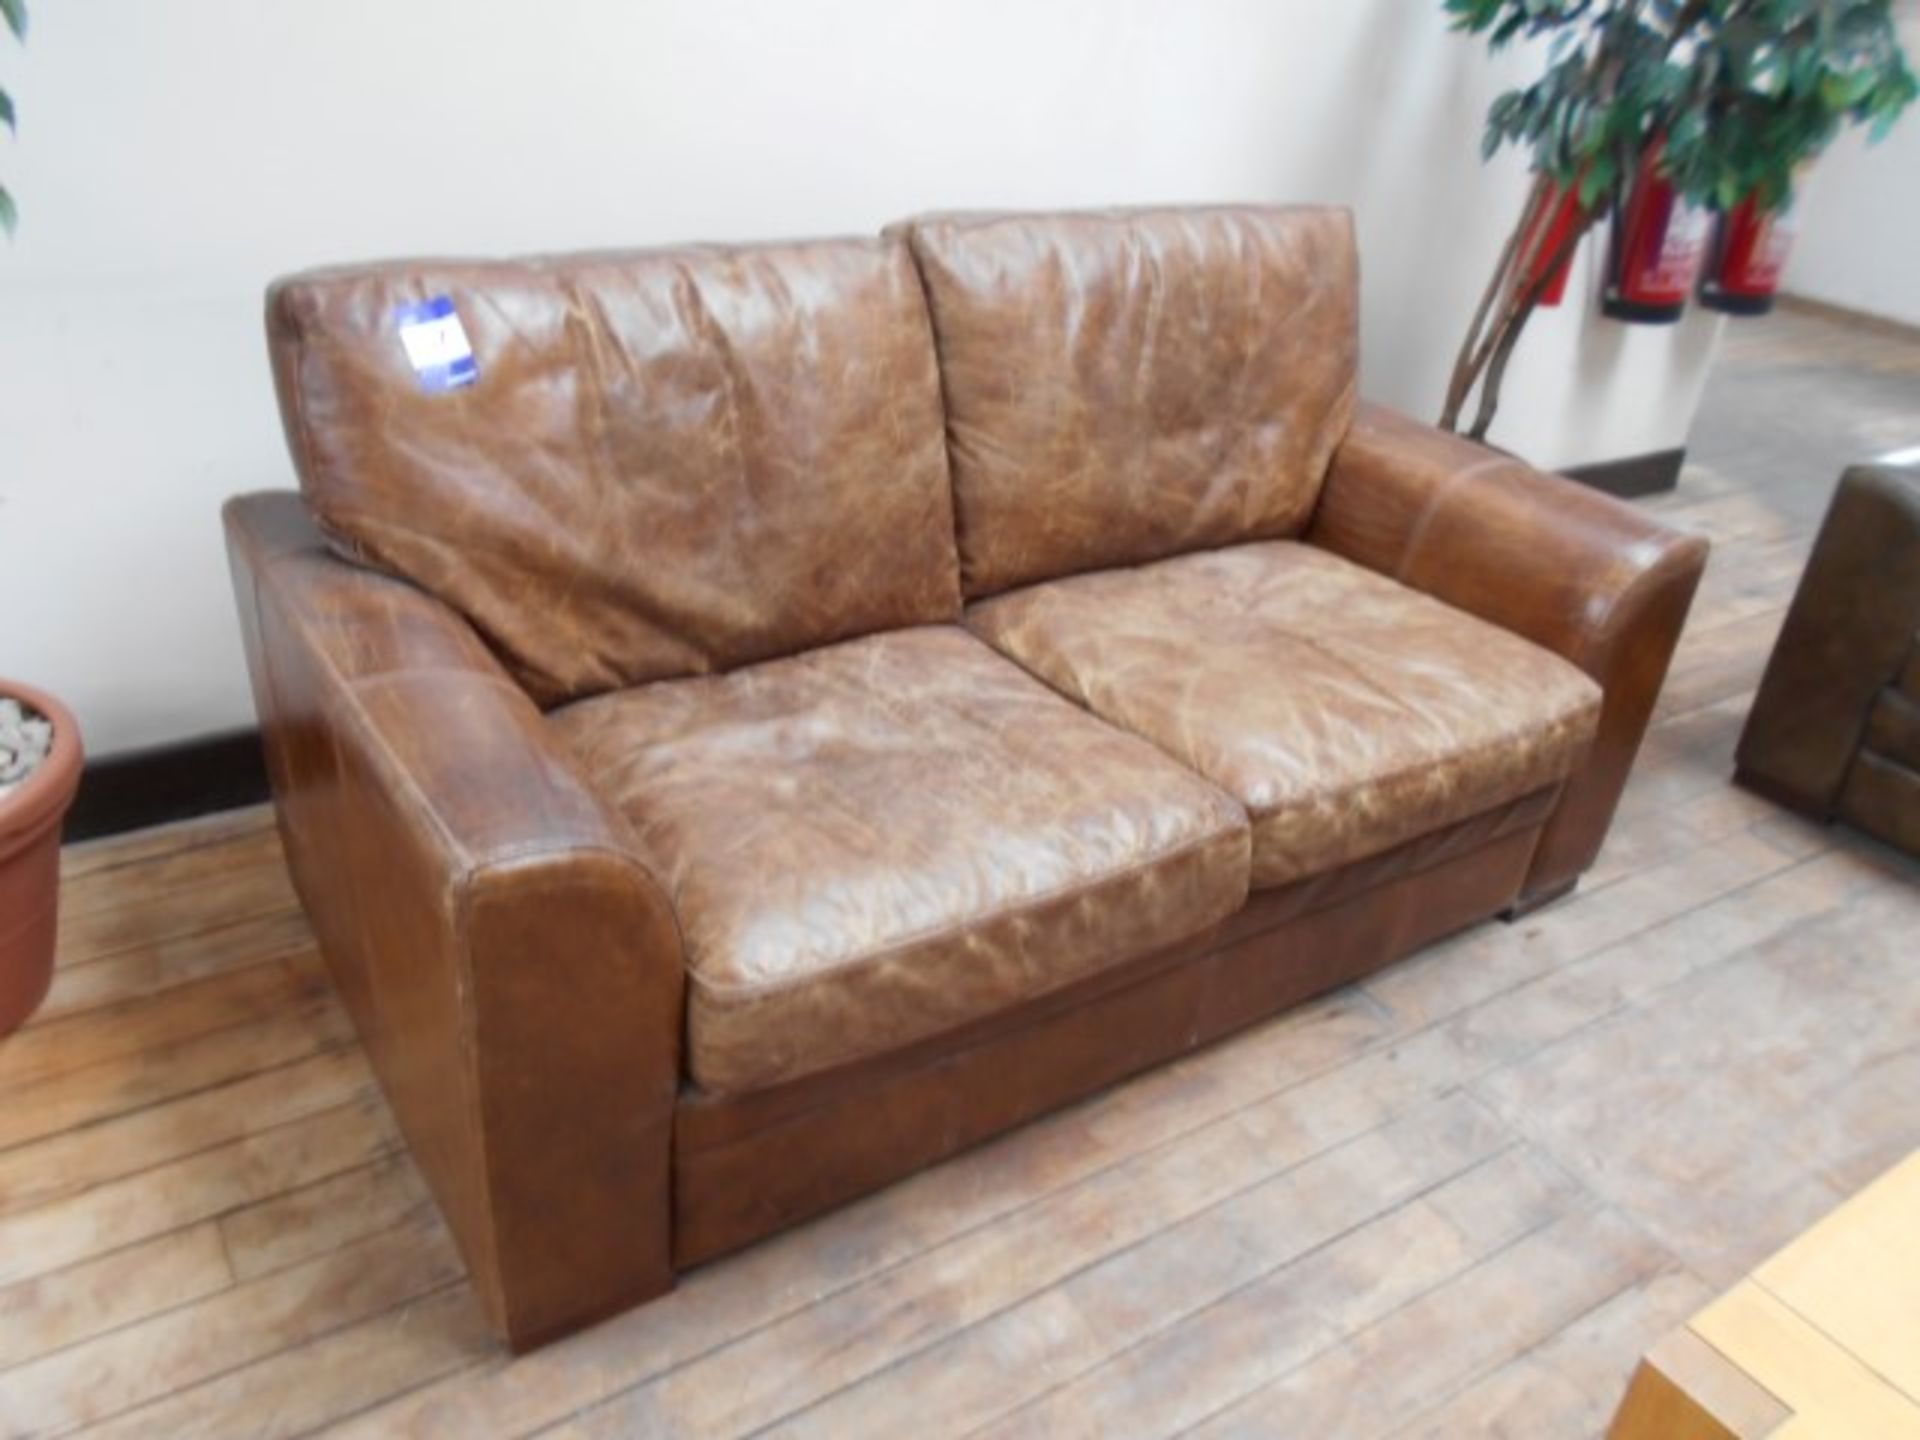 Lot 57 - 2 Seater Distressed Leather Effect Sofa